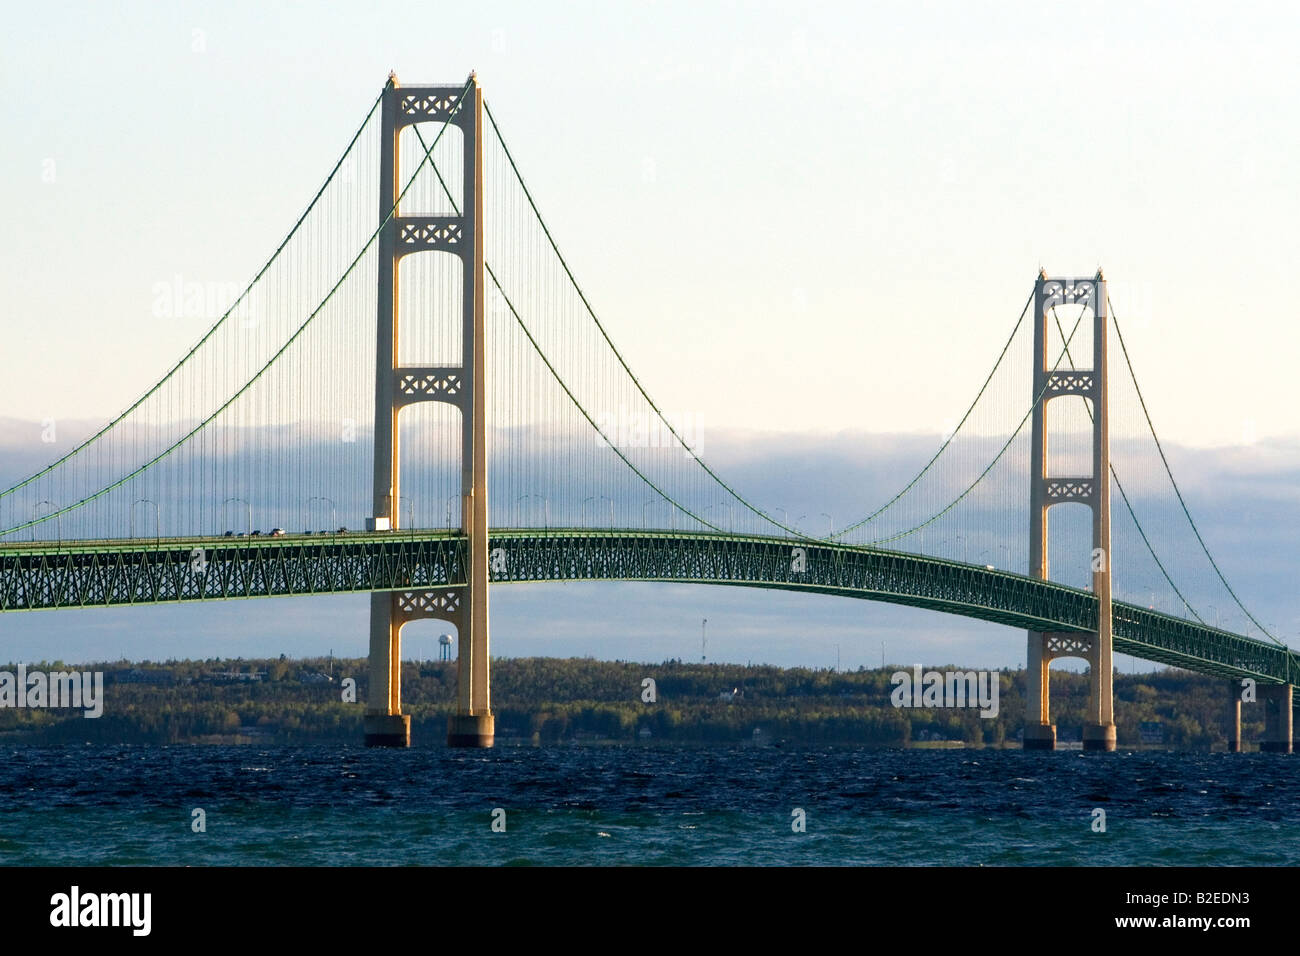 The Mackinac Bridge spanning the Straits of Mackinac at Mackinaw City Michigan - Stock Image